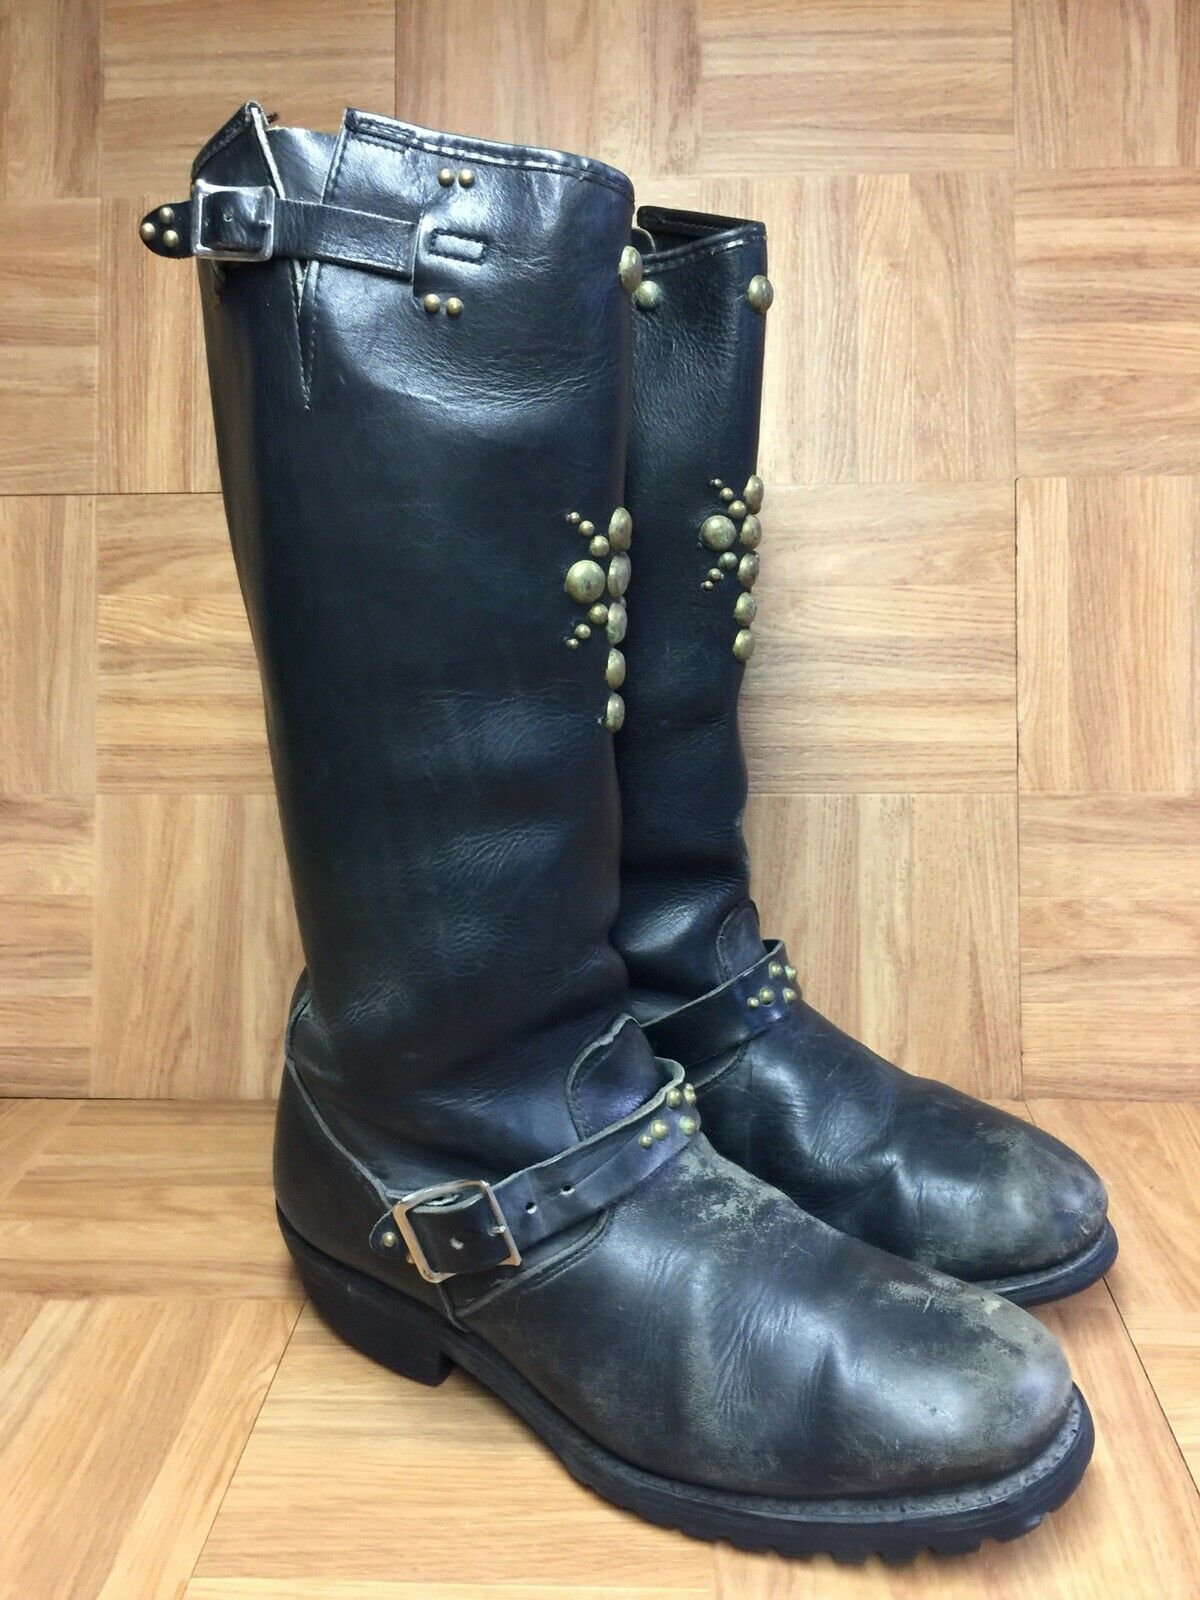 VNTG Matterhorn Studded Biker Motorcycle stivali Sz 10 Men's nero Leather Tall